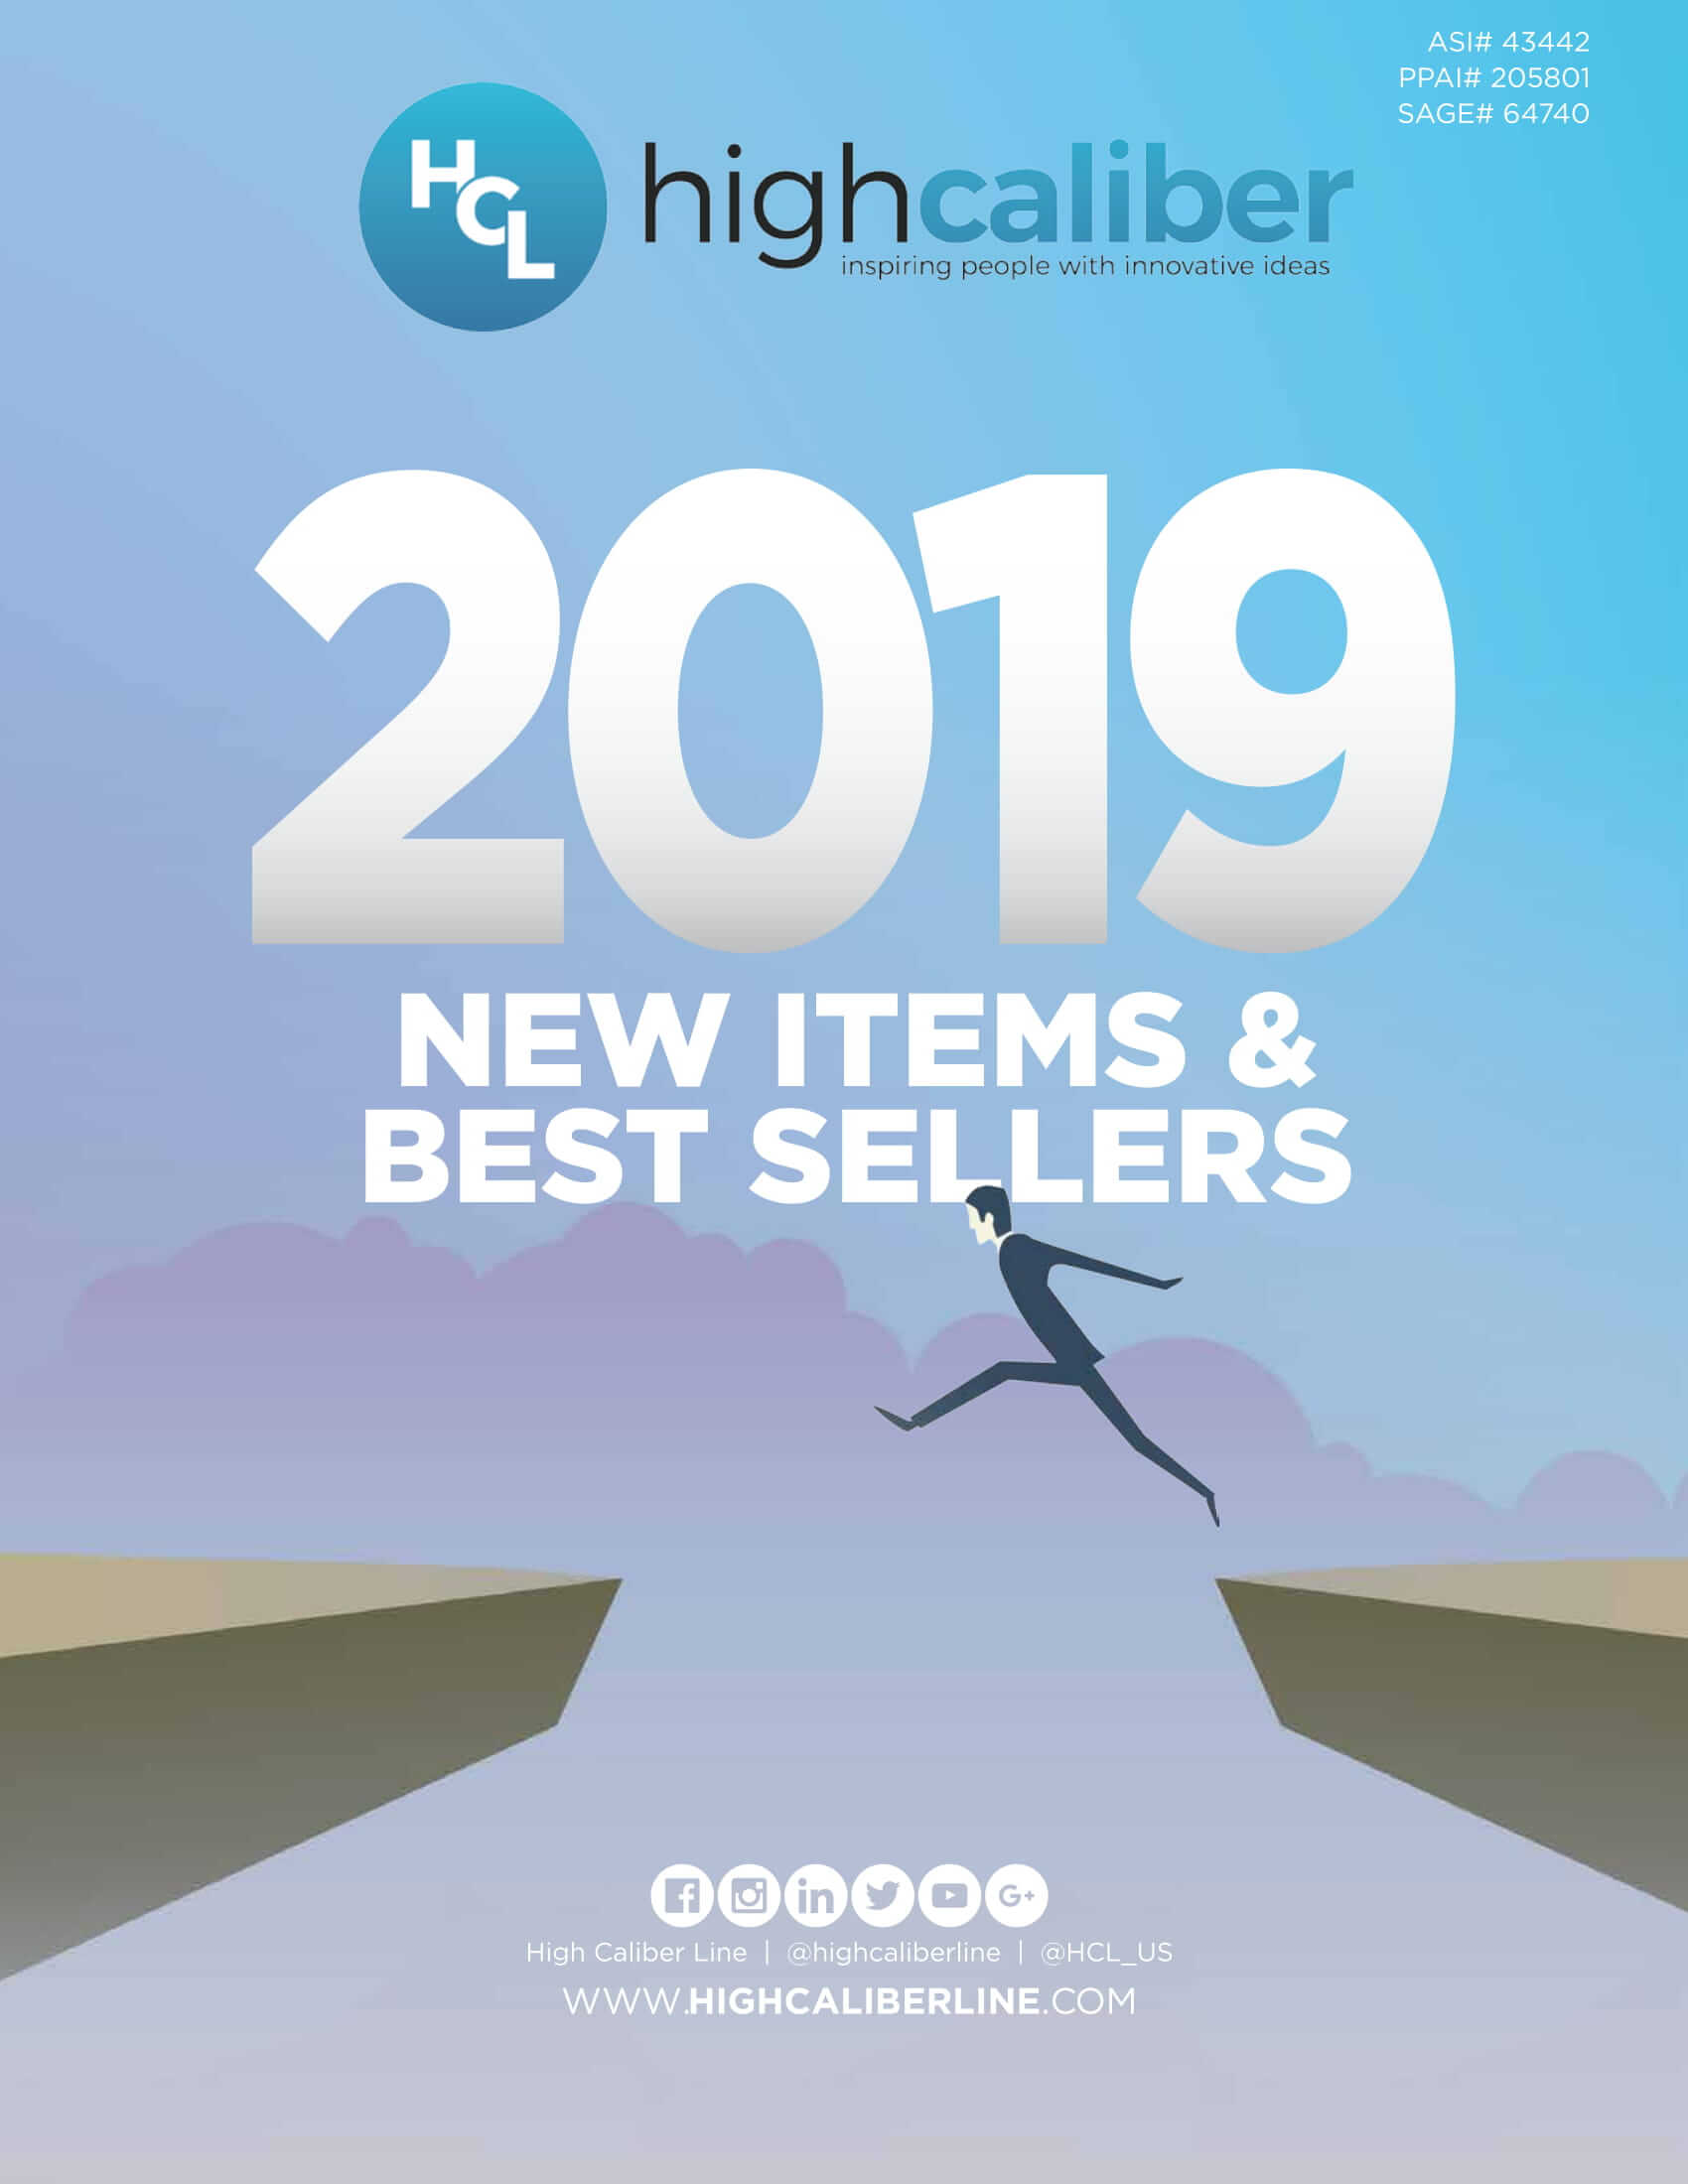 2019 New Items & Best Sellers